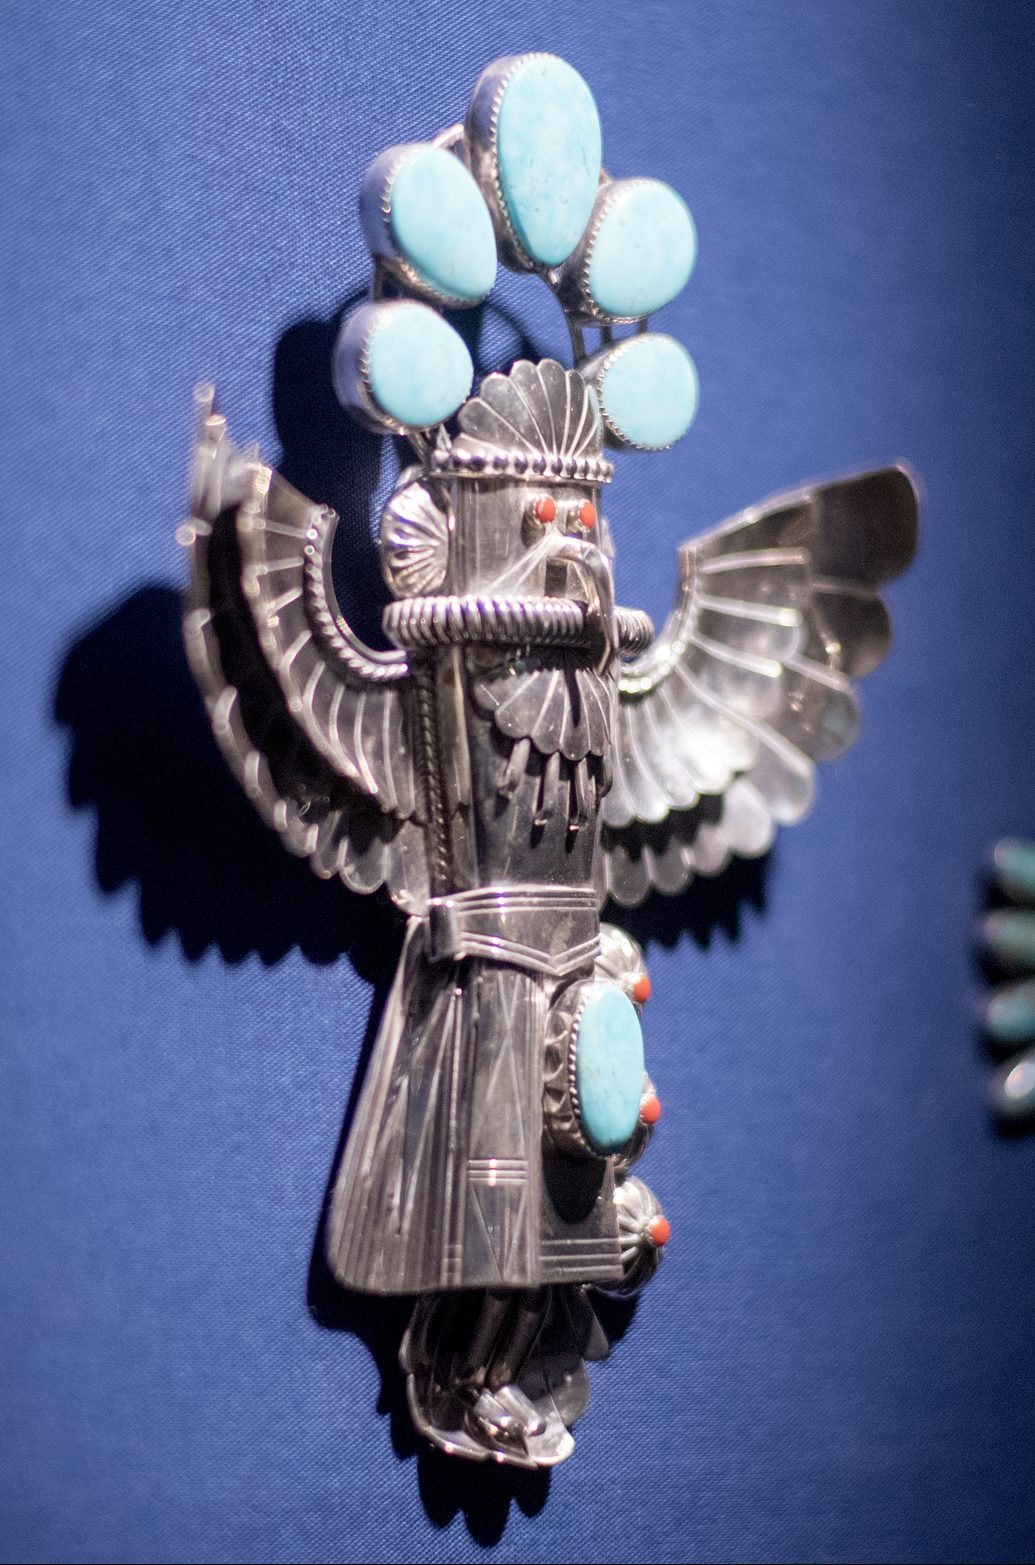 Jerry Roan, Eagle Dancer, broche, circa 1970. Collectie Madeleine Albright, Read my Pins, LBJ Library, 2017. Foto Jay Godwin, zilver, turkoois, koraal